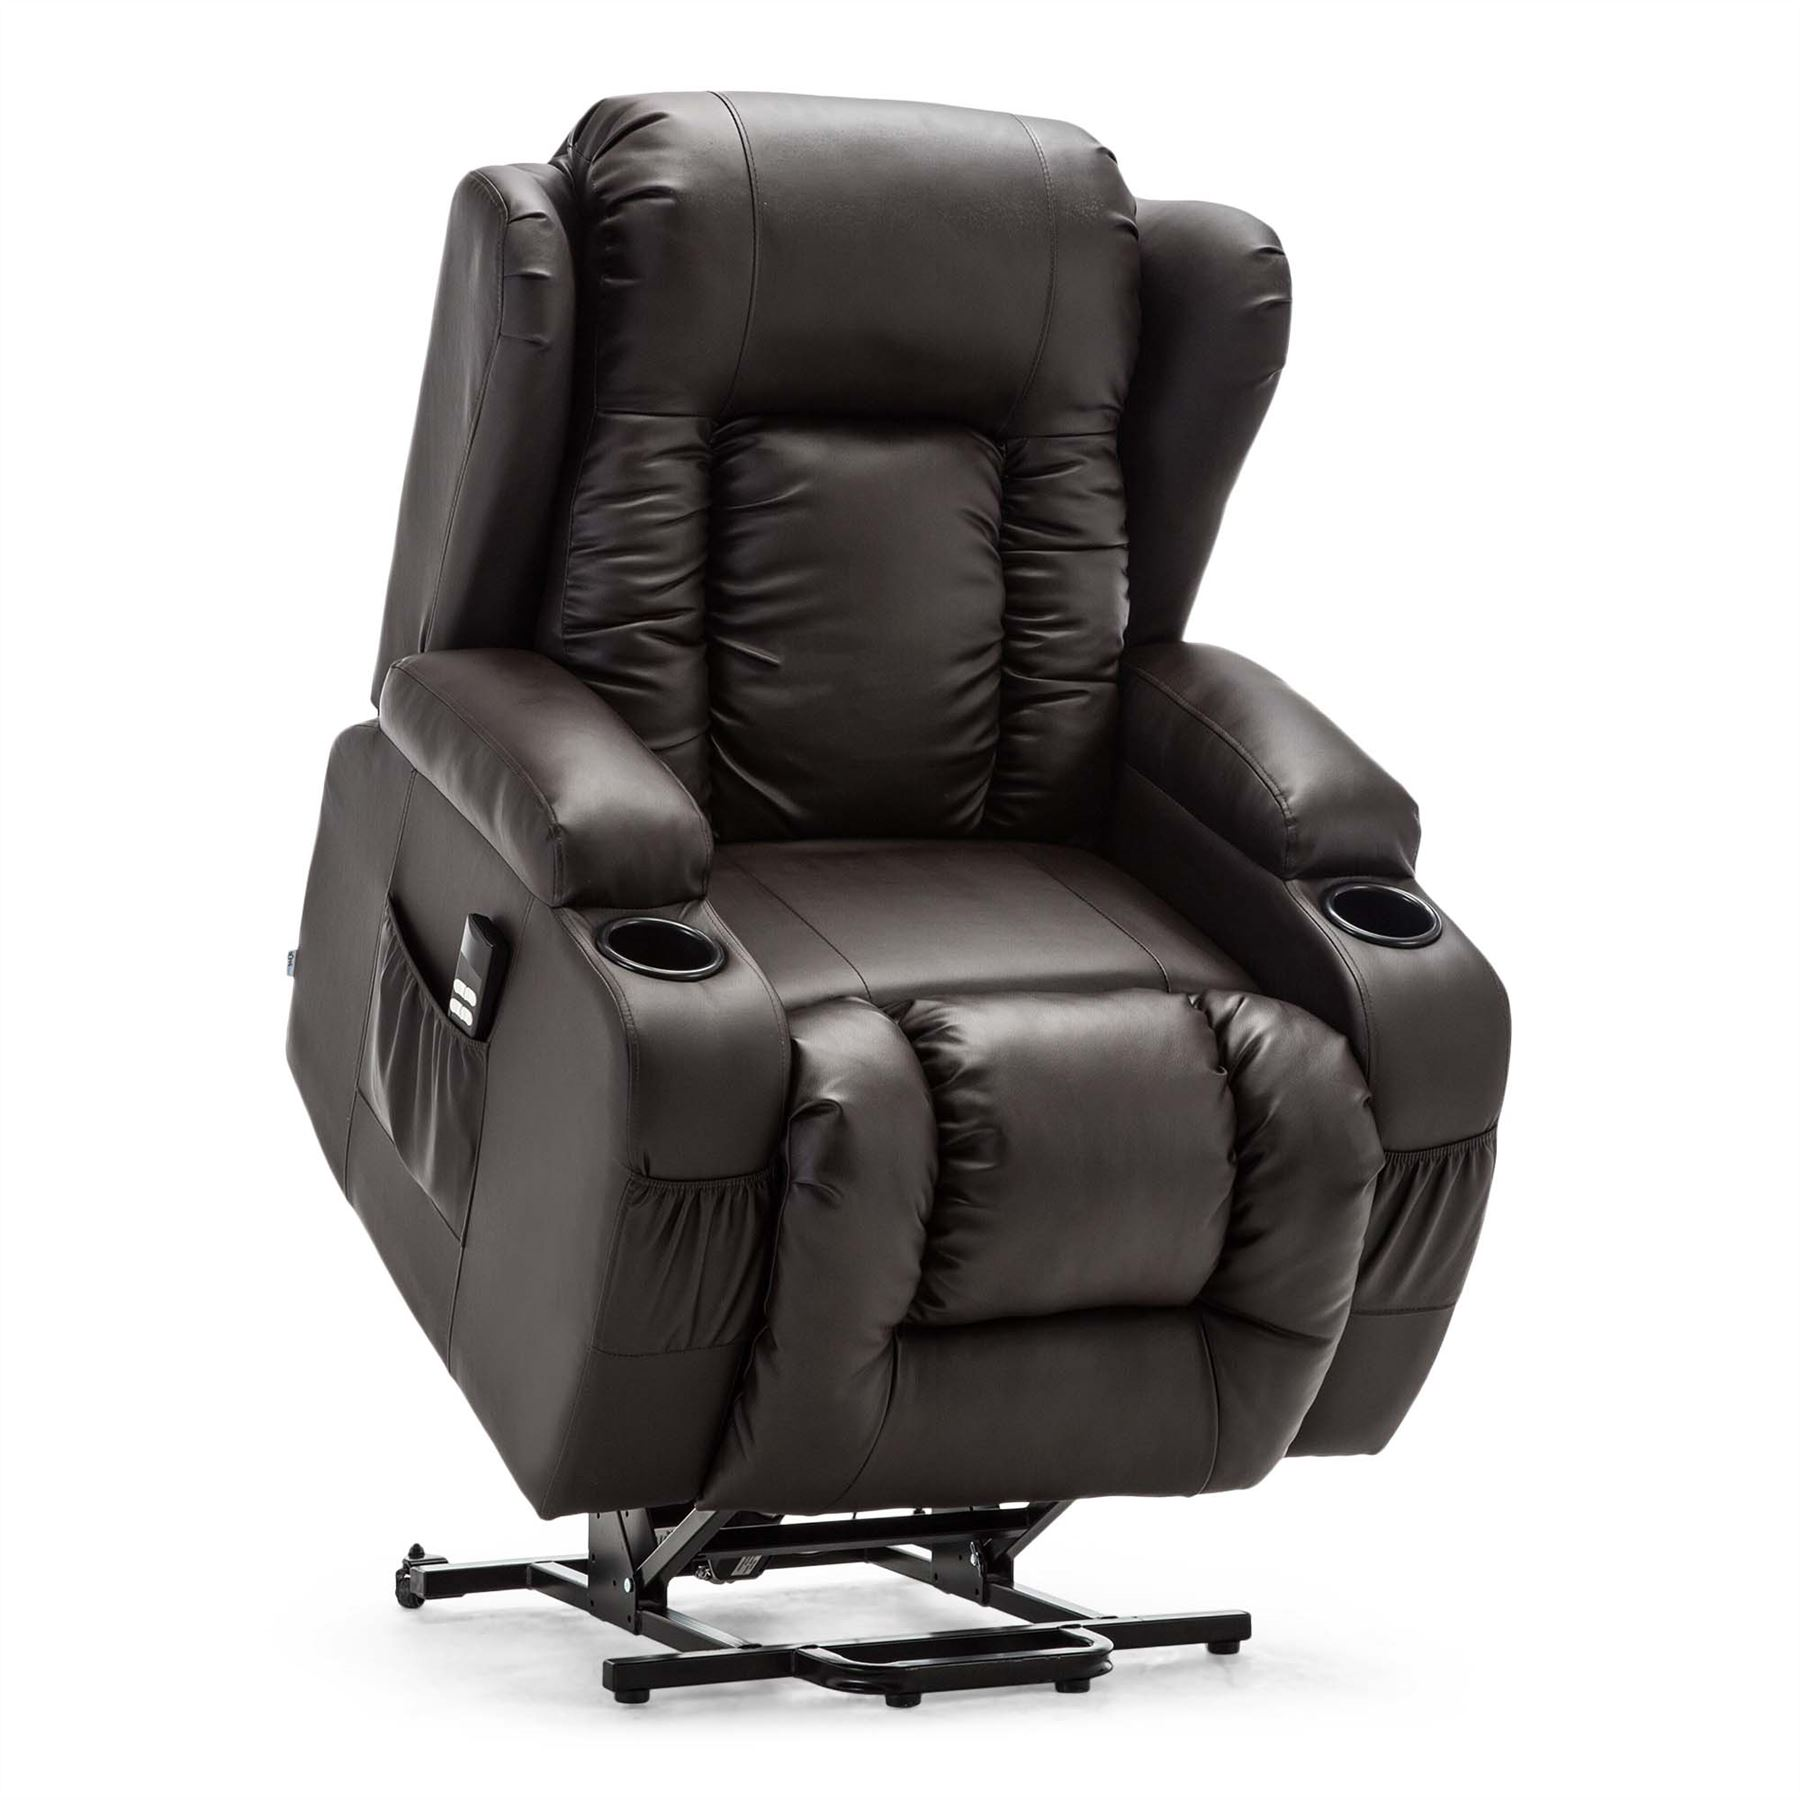 CAESAR-DUAL-MOTOR-RISER-RECLINER-LEATHER-MOBILITY-ARMCHAIR-MASSAGE-HEATED-CHAIR thumbnail 10